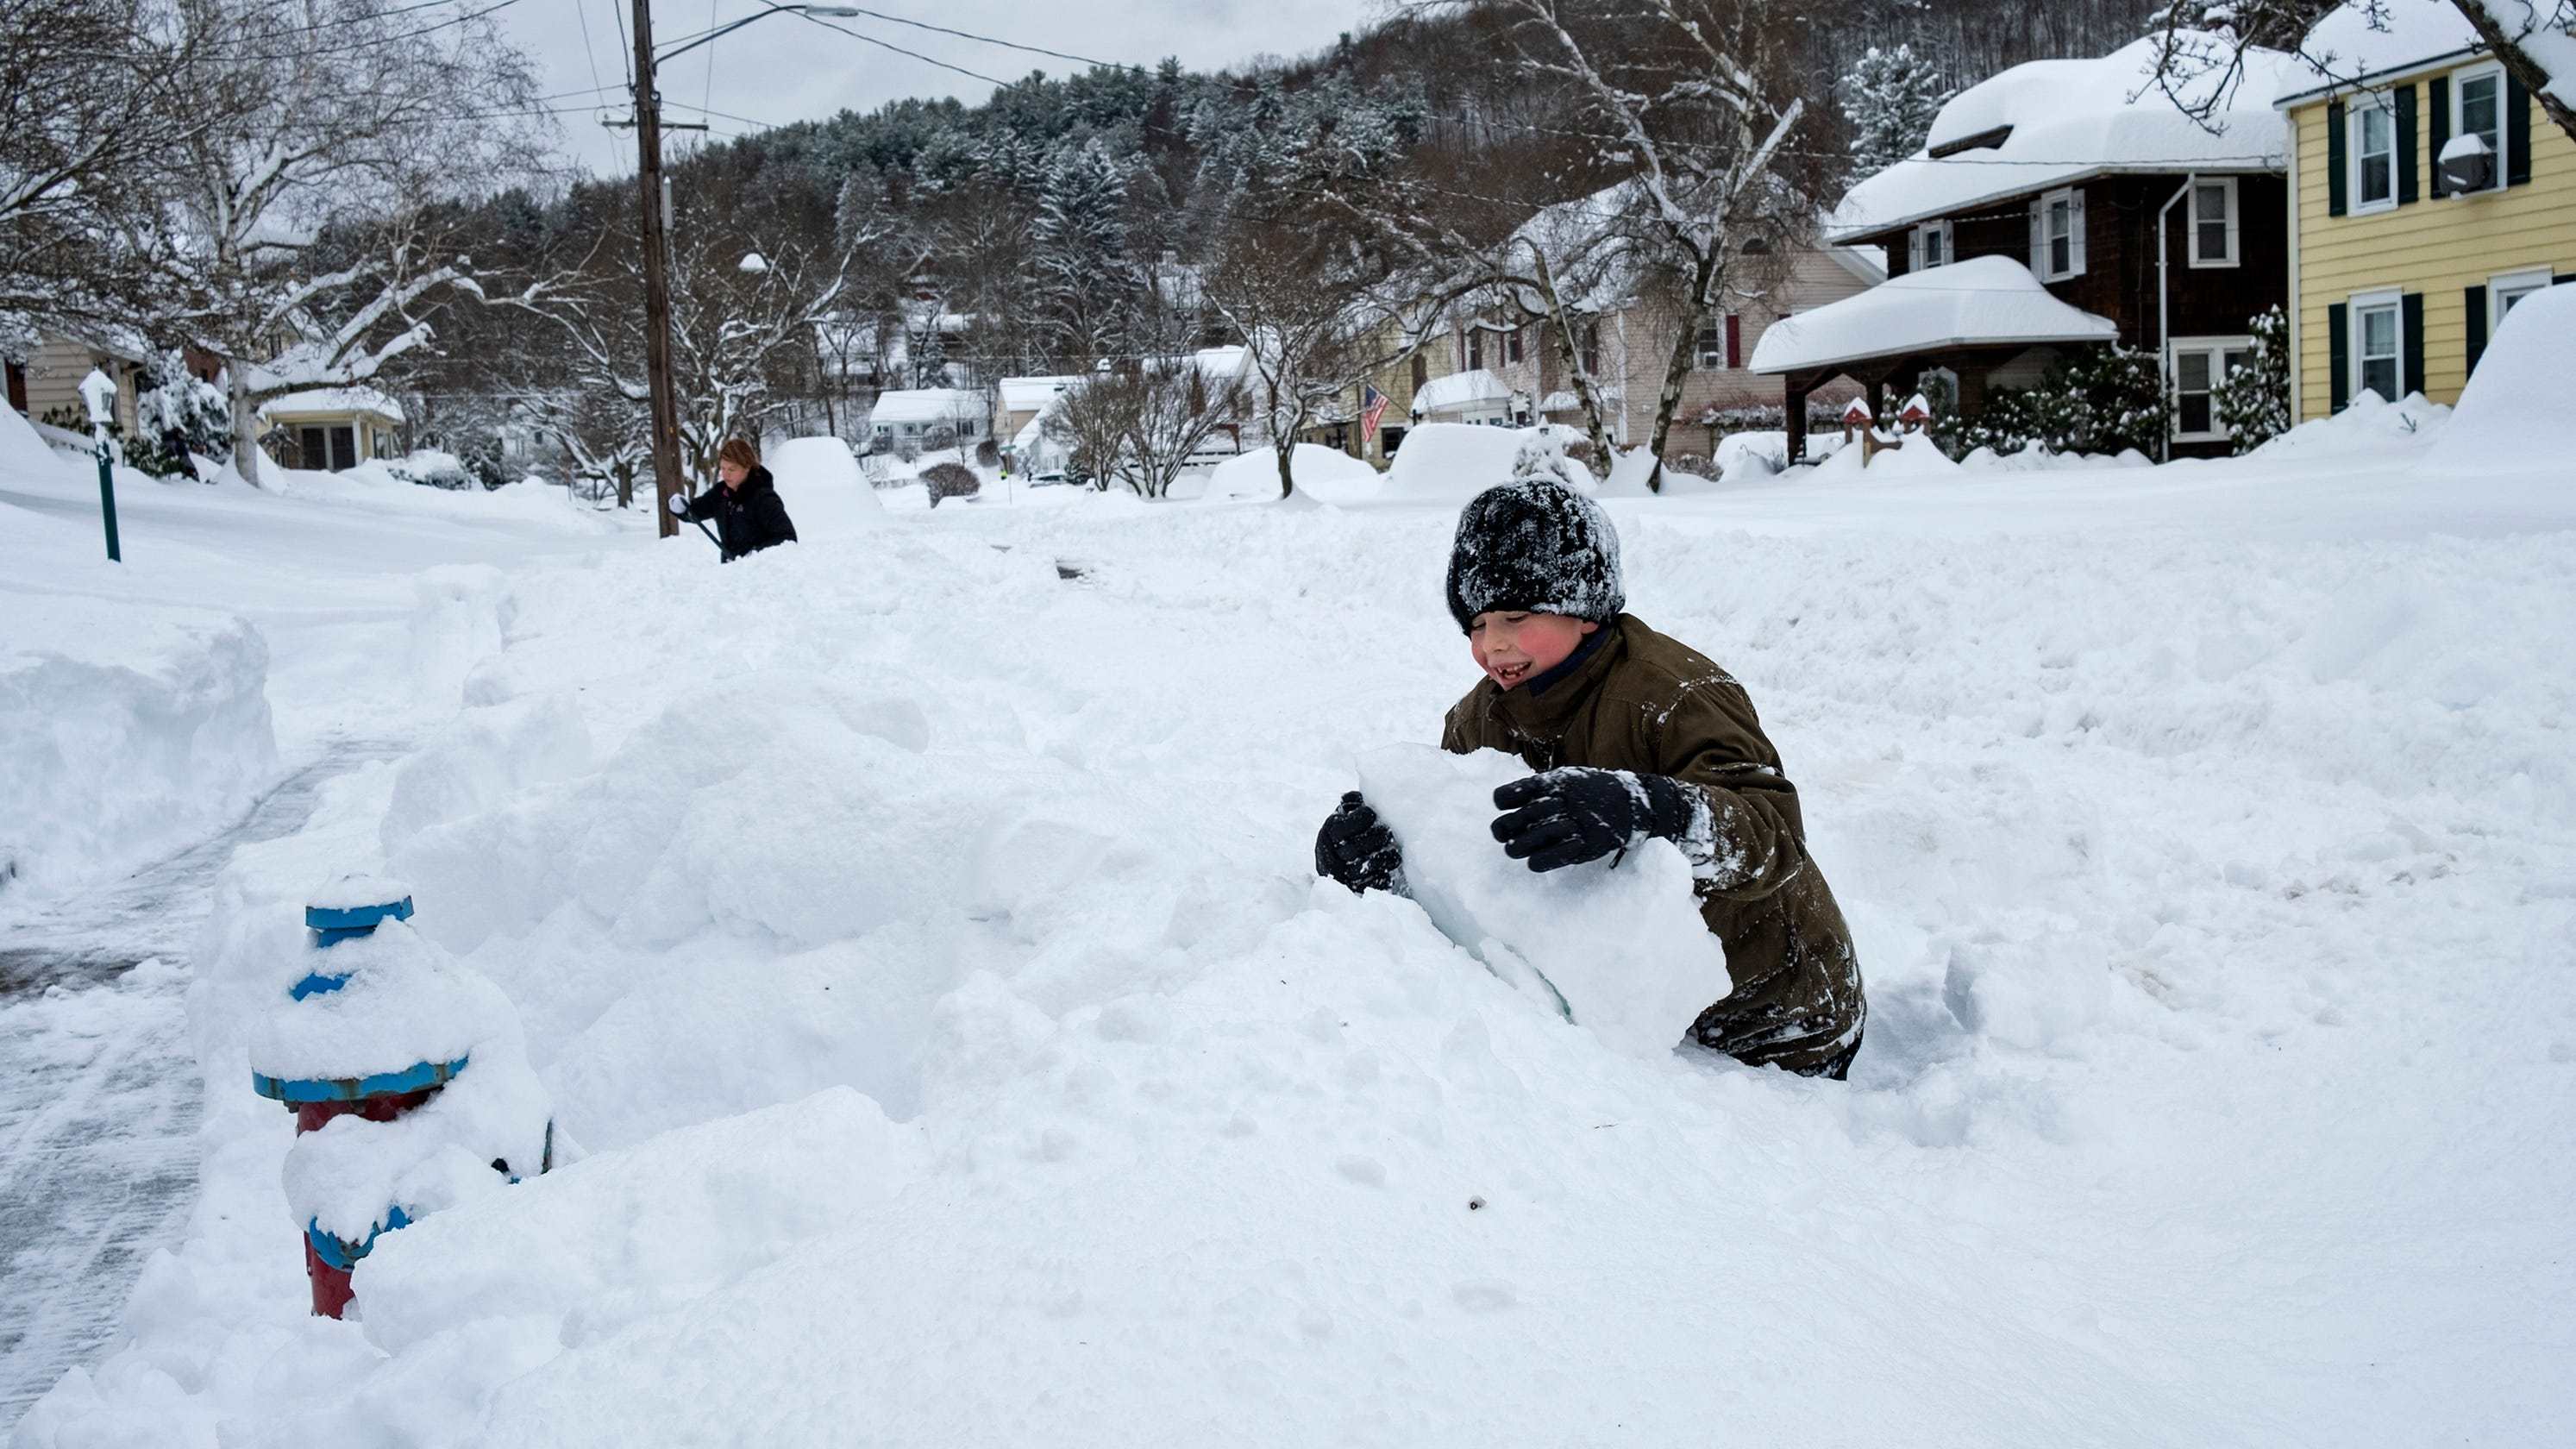 Even virtual schoolchildren need the lessons of snow days